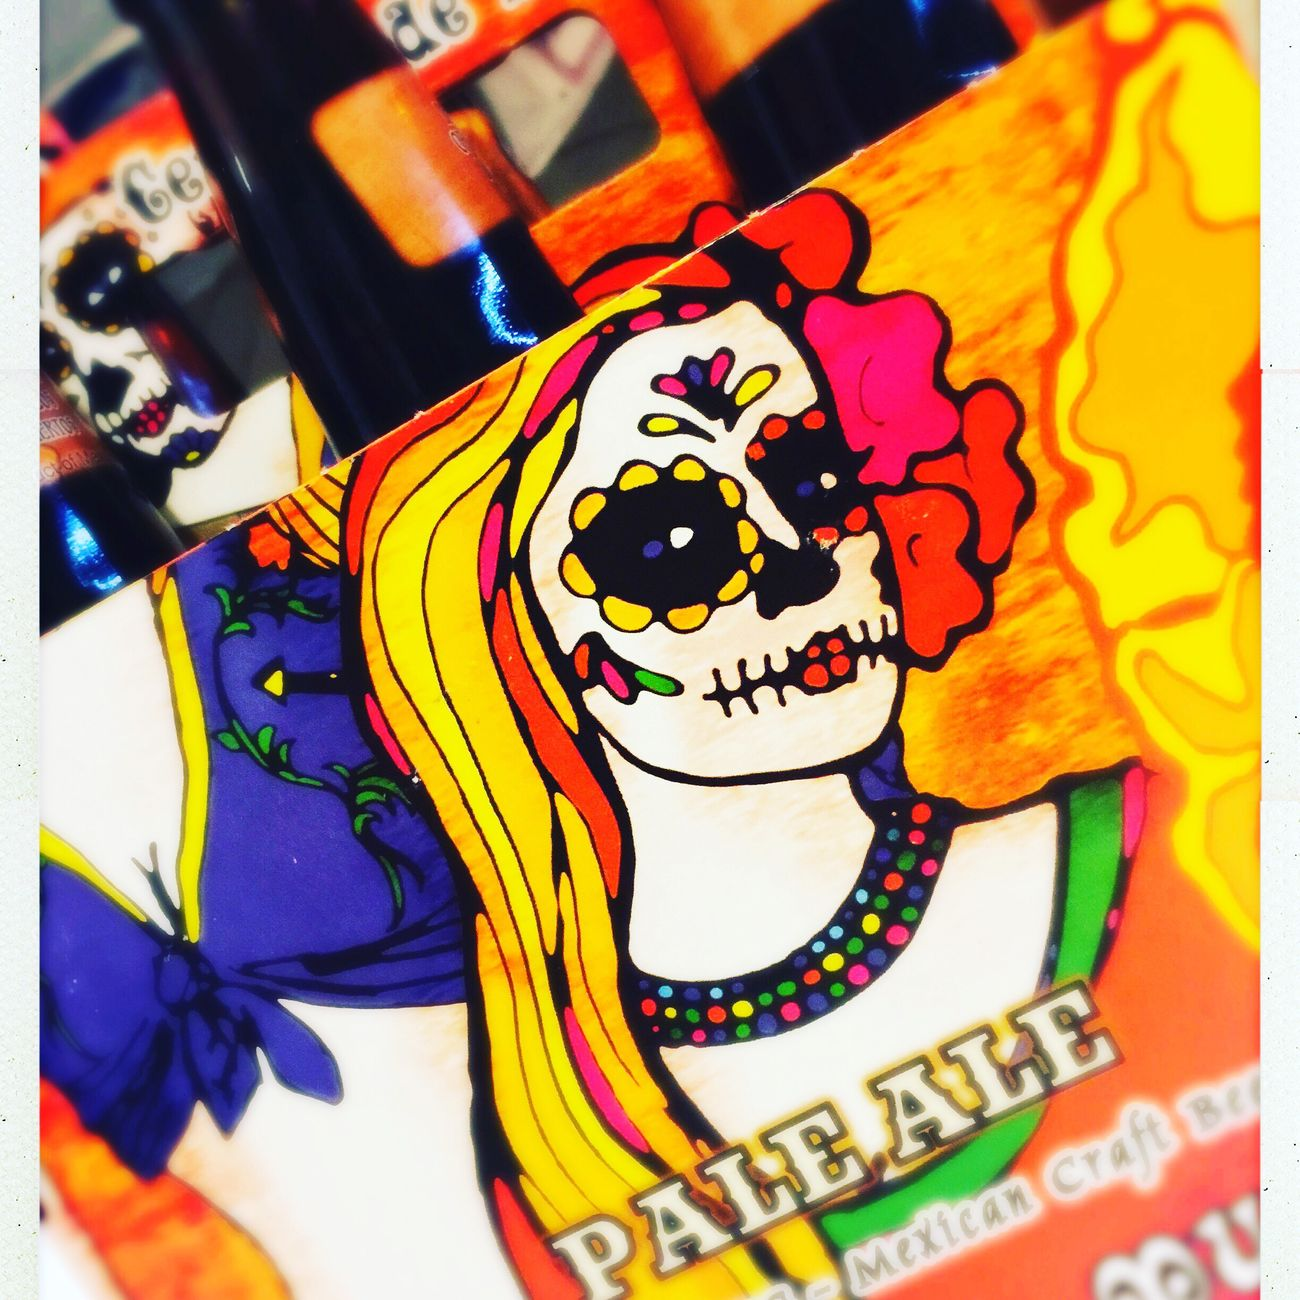 Went to a food festival and bought a pack of Mexican beer. Loved the packaging and the beer wasn't bad either Temptation Food And Drink Art Detail Human Representation Multi Colored Creativity Unhealthy Eating Beer IPhoneography Bedford Iphone6plus Bedfordshire Iphoneonly IPhone Beer Time MexicanGirl Mexican Mexican Art